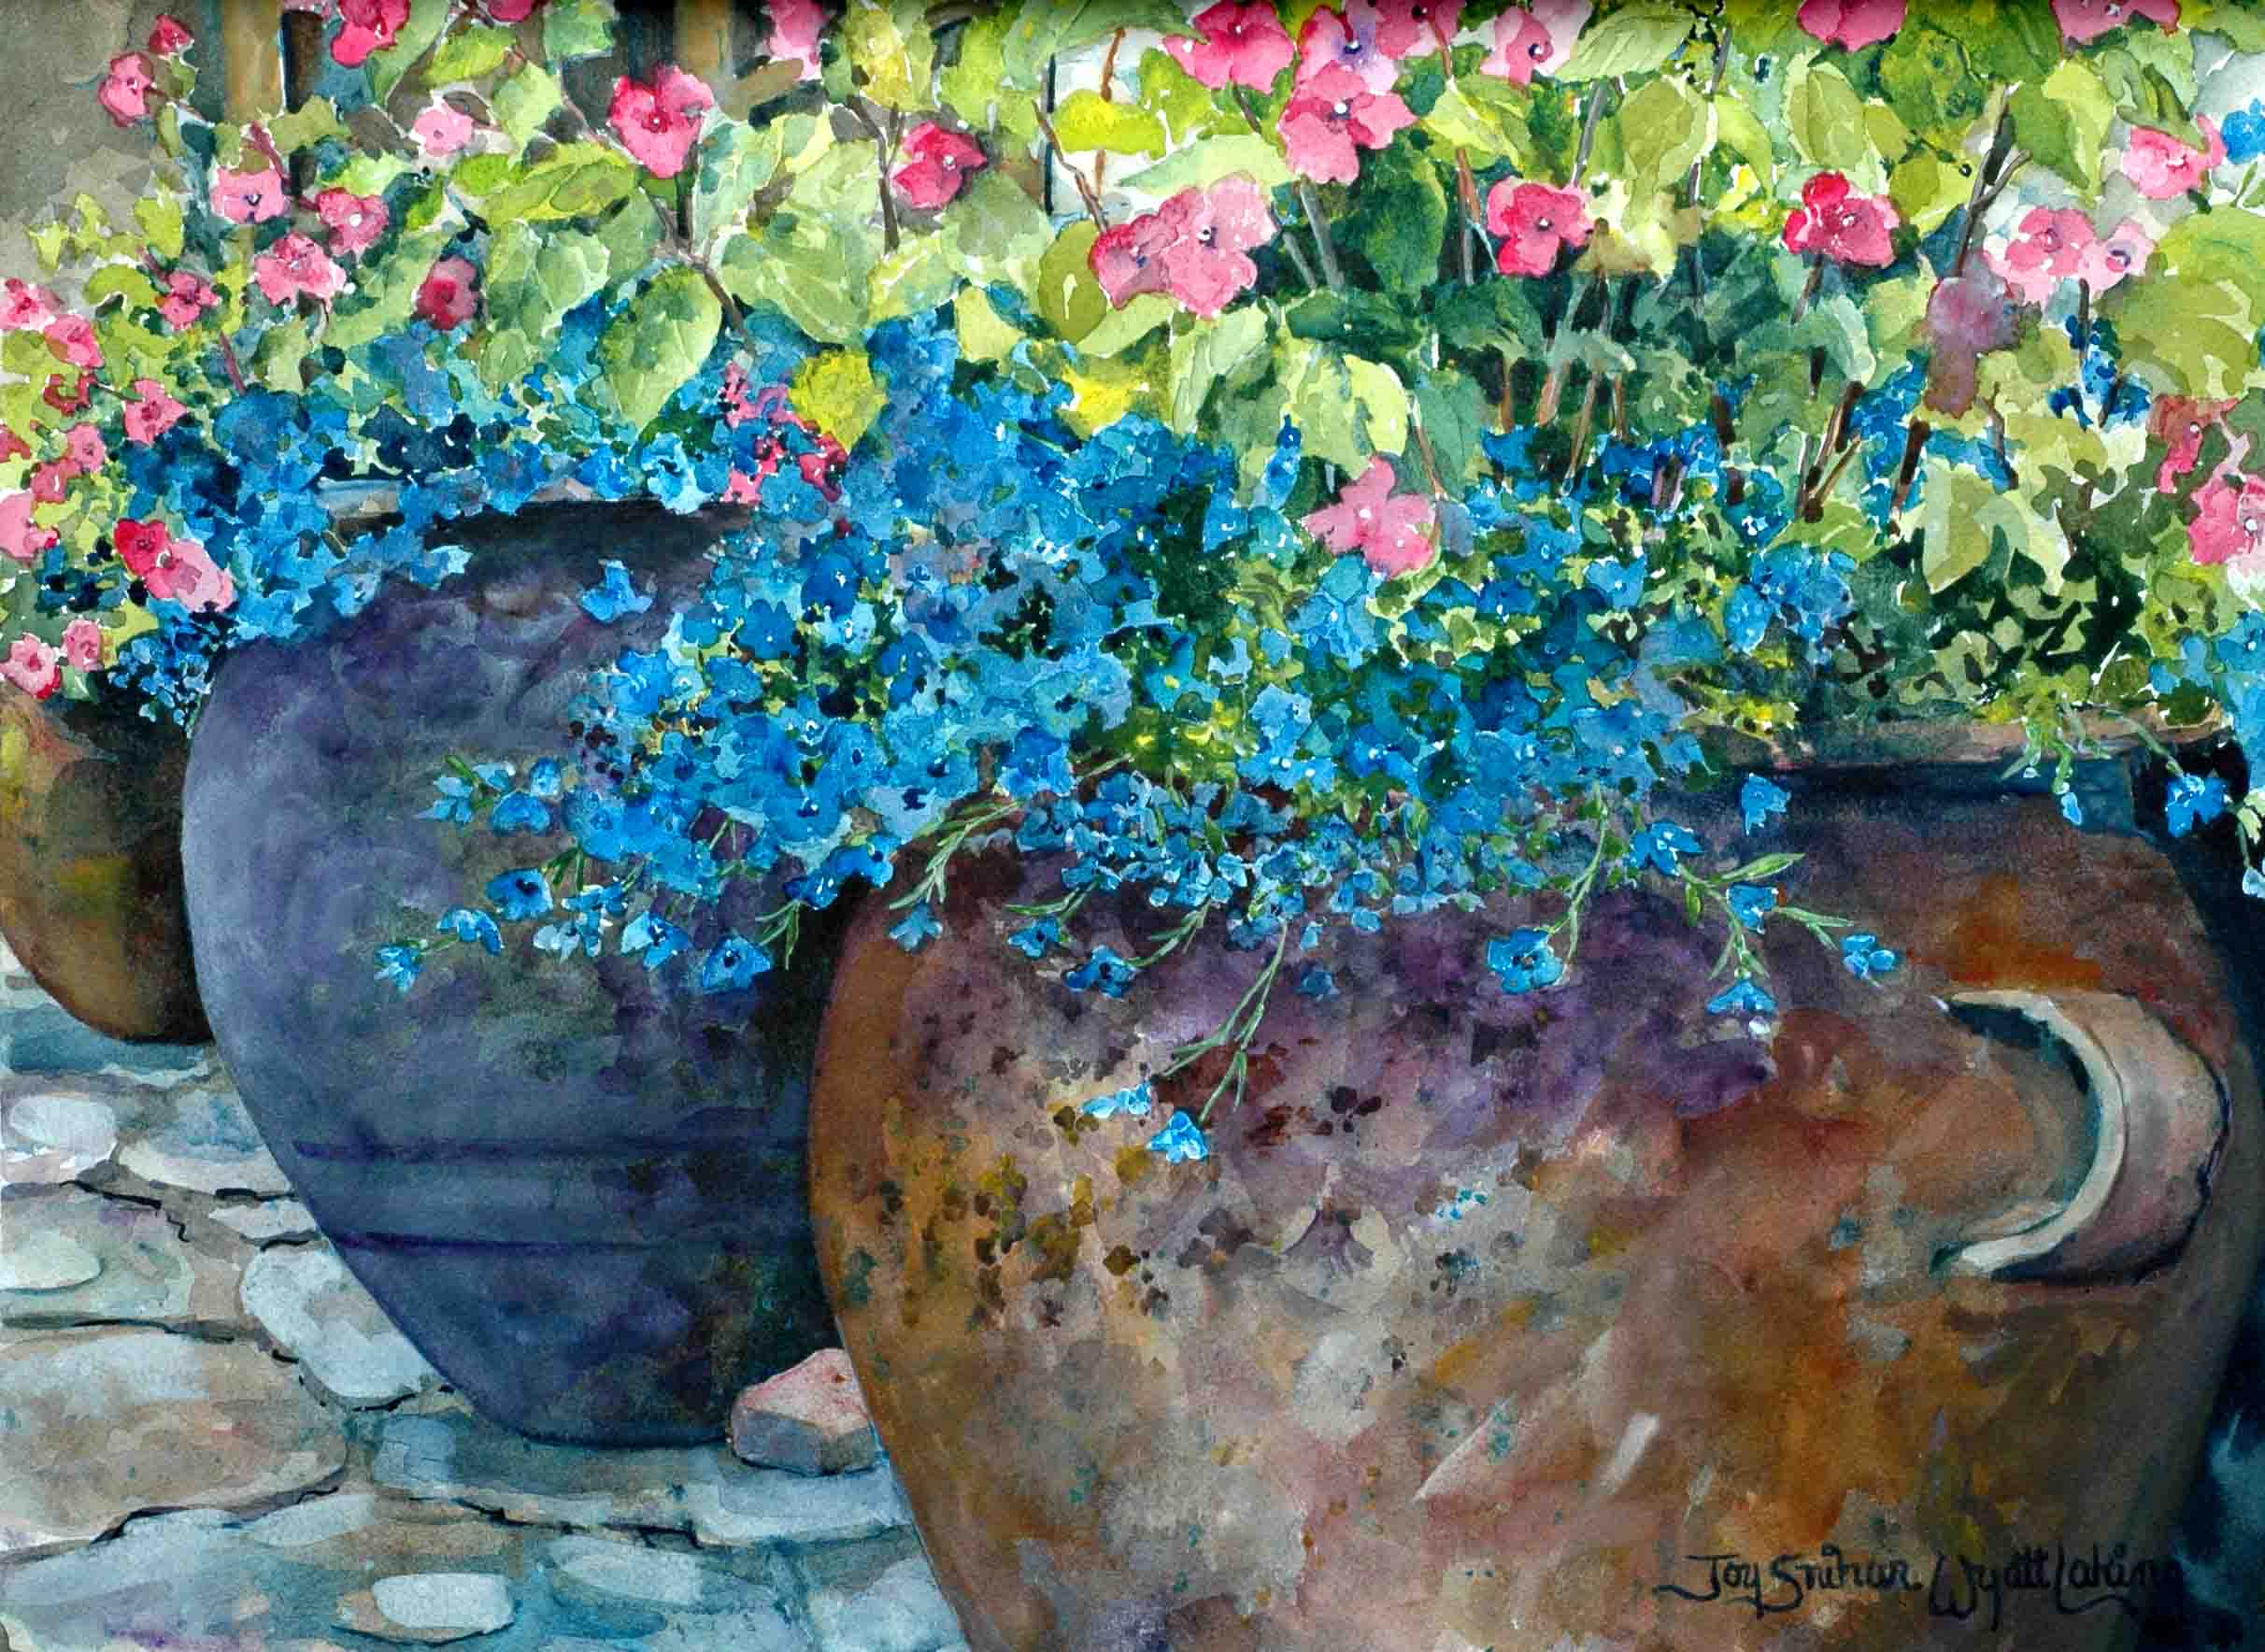 Pots with pink and blue flowers joy laking gallery pots with pink and blue flowers izmirmasajfo